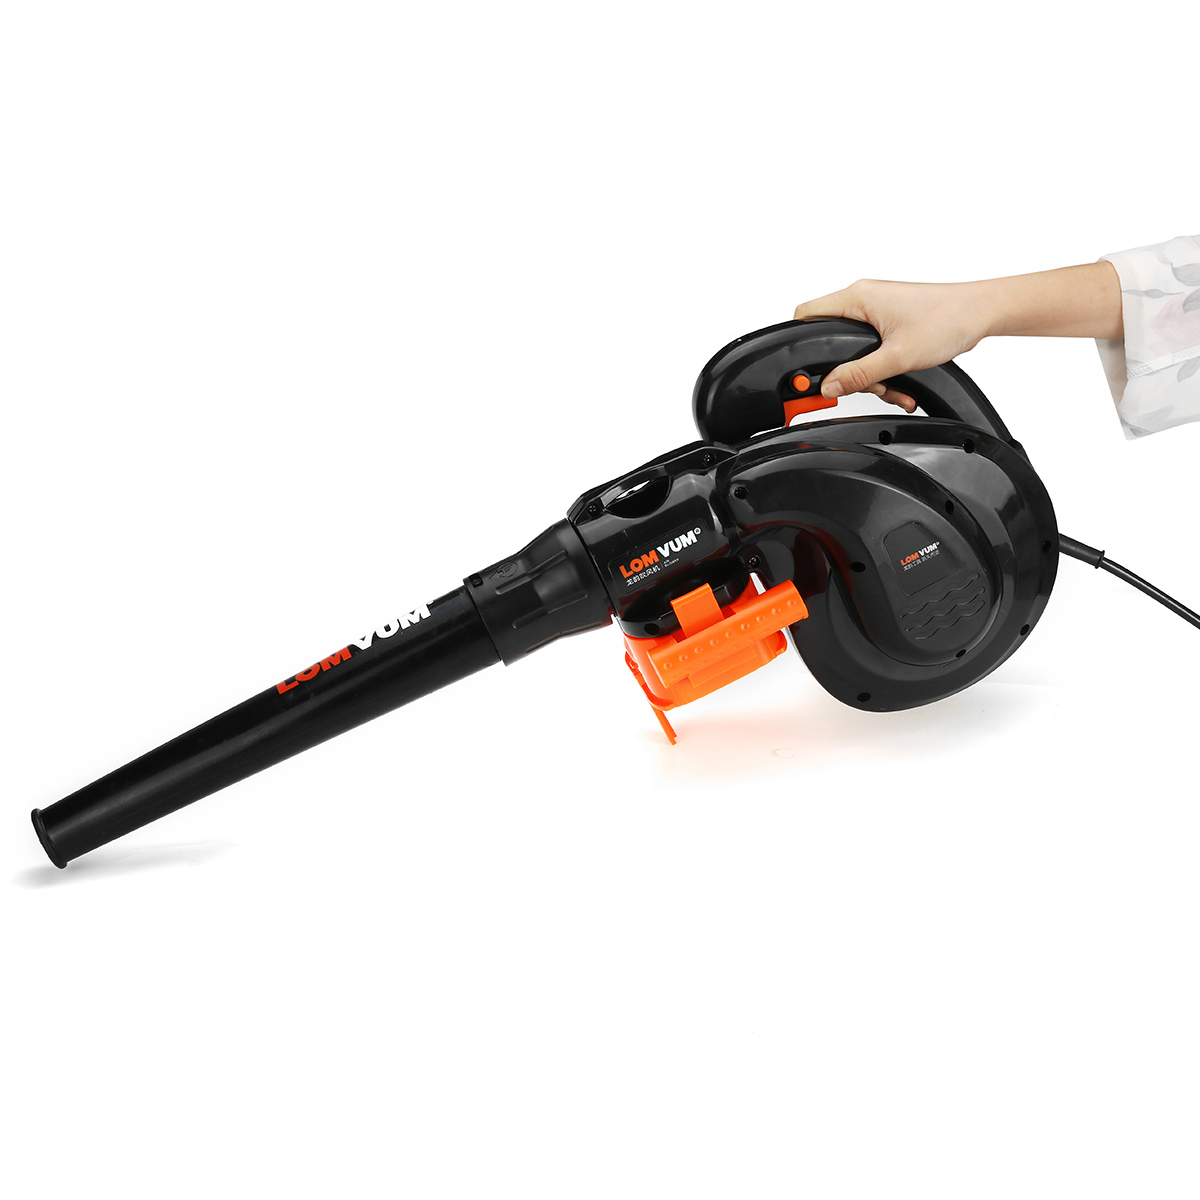 1800W 220V Handheld Air Blower Vacuum 6-Speed Adjustable Car Garden Dust Leaf Vacuum Cleaner